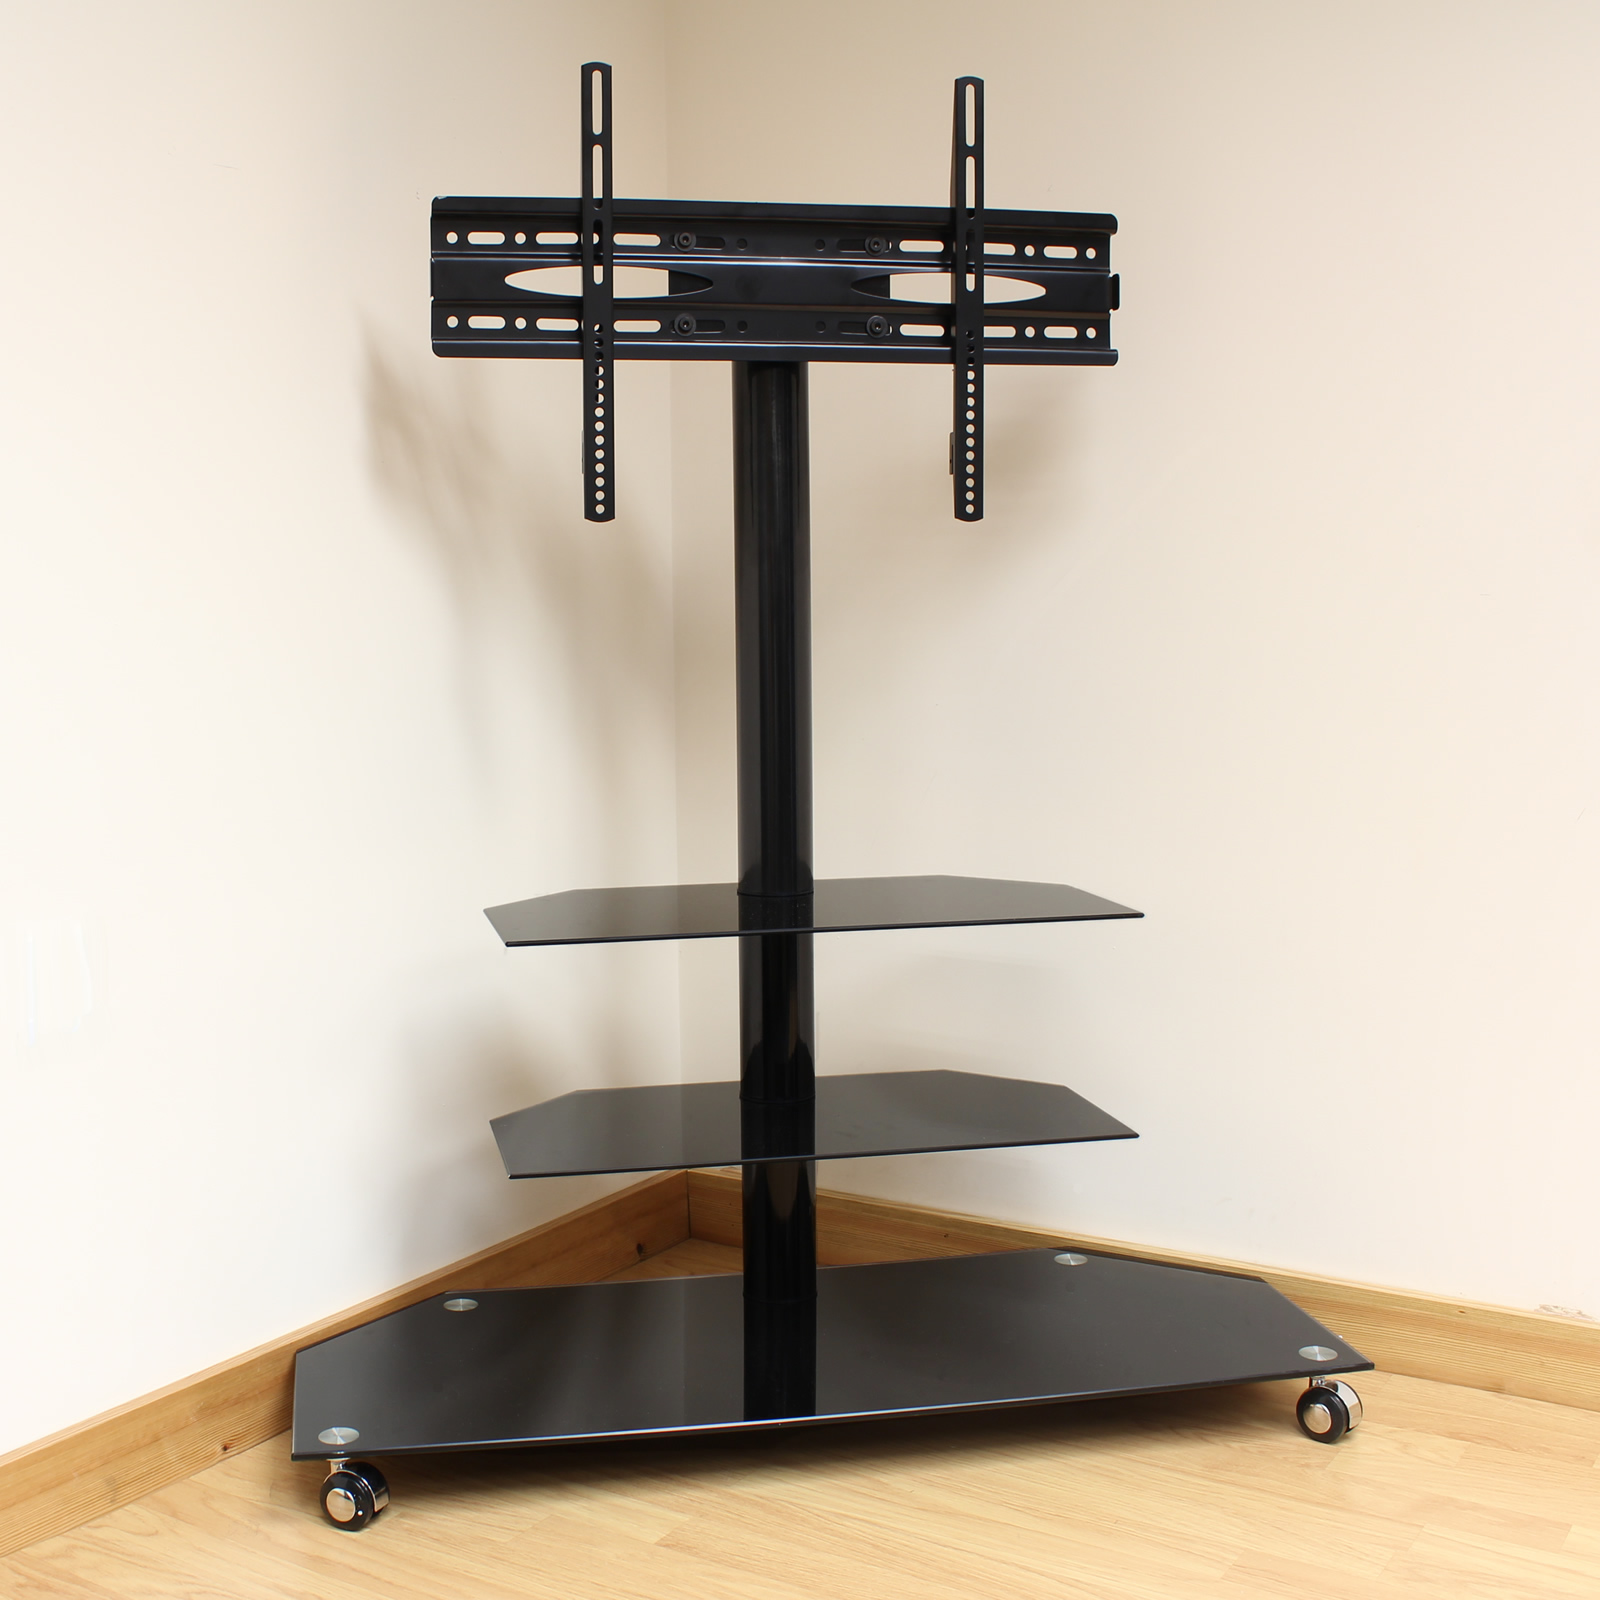 Tv Stand With Wheels Hartleys Cantilever Mobile Tv Stand Trolley With Bracket